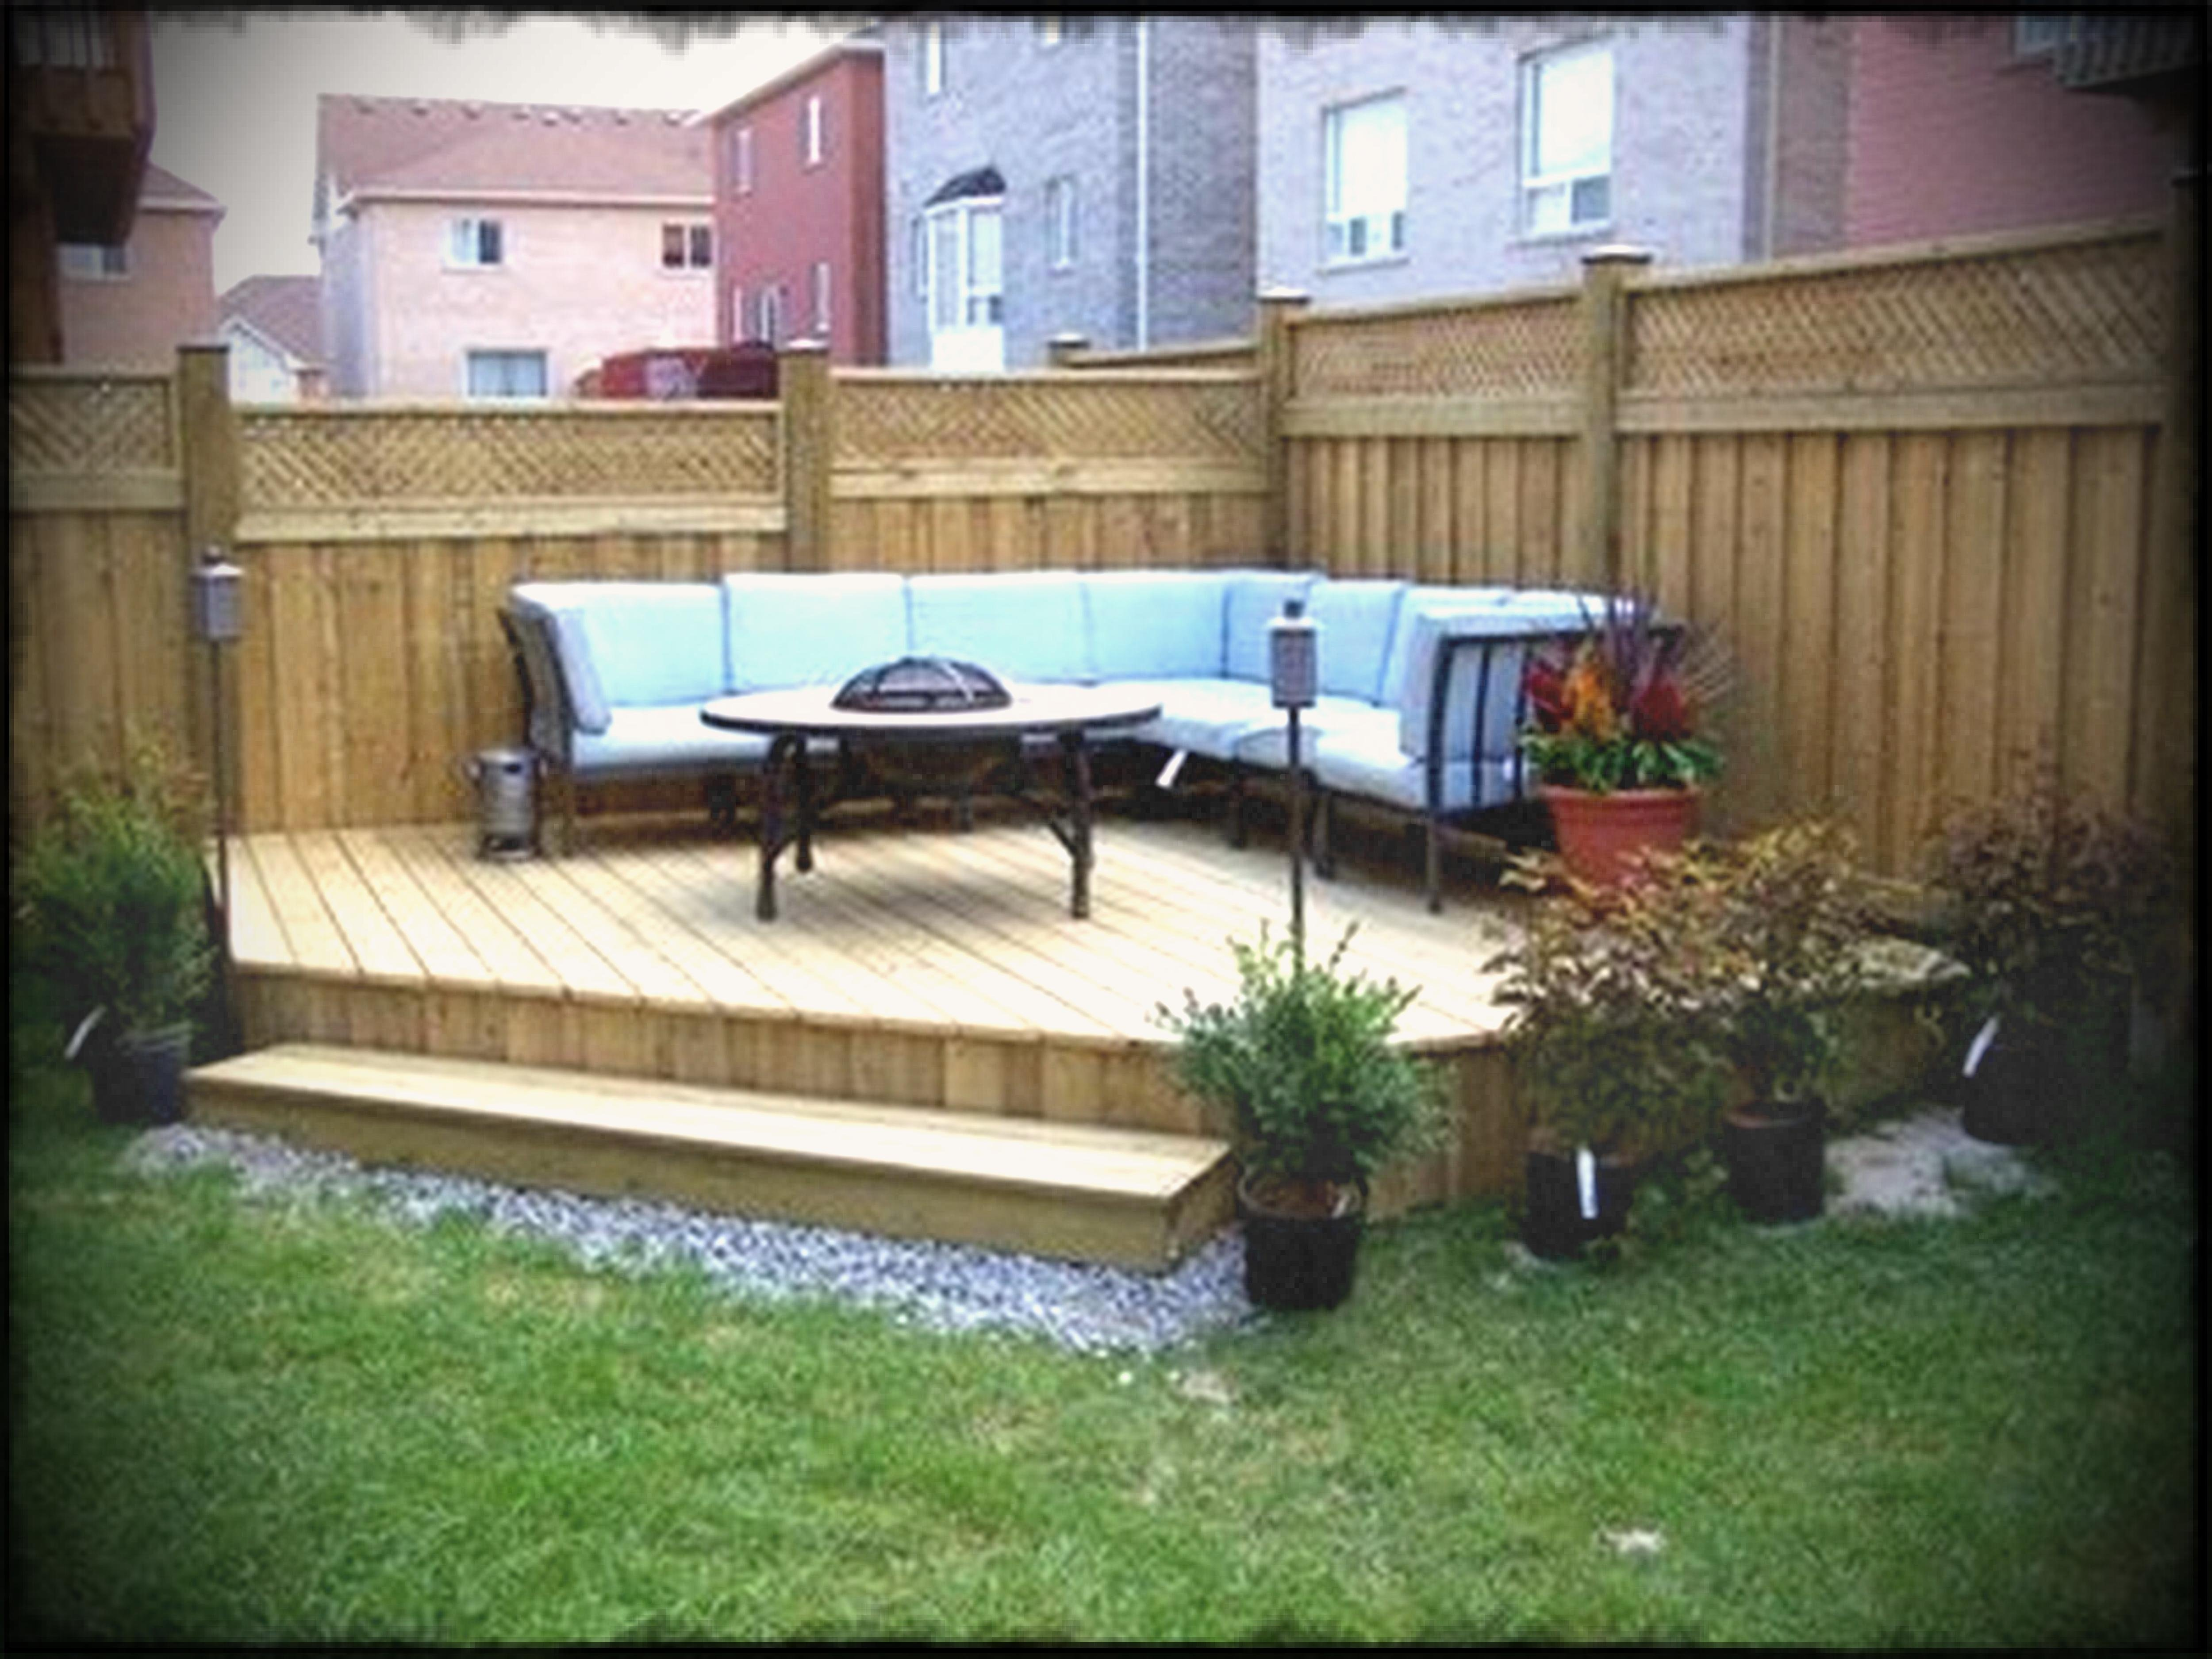 10 Lovable Backyard Design Ideas On A Budget diy backyard design ideas on a budget easy and cheap home finder 2020